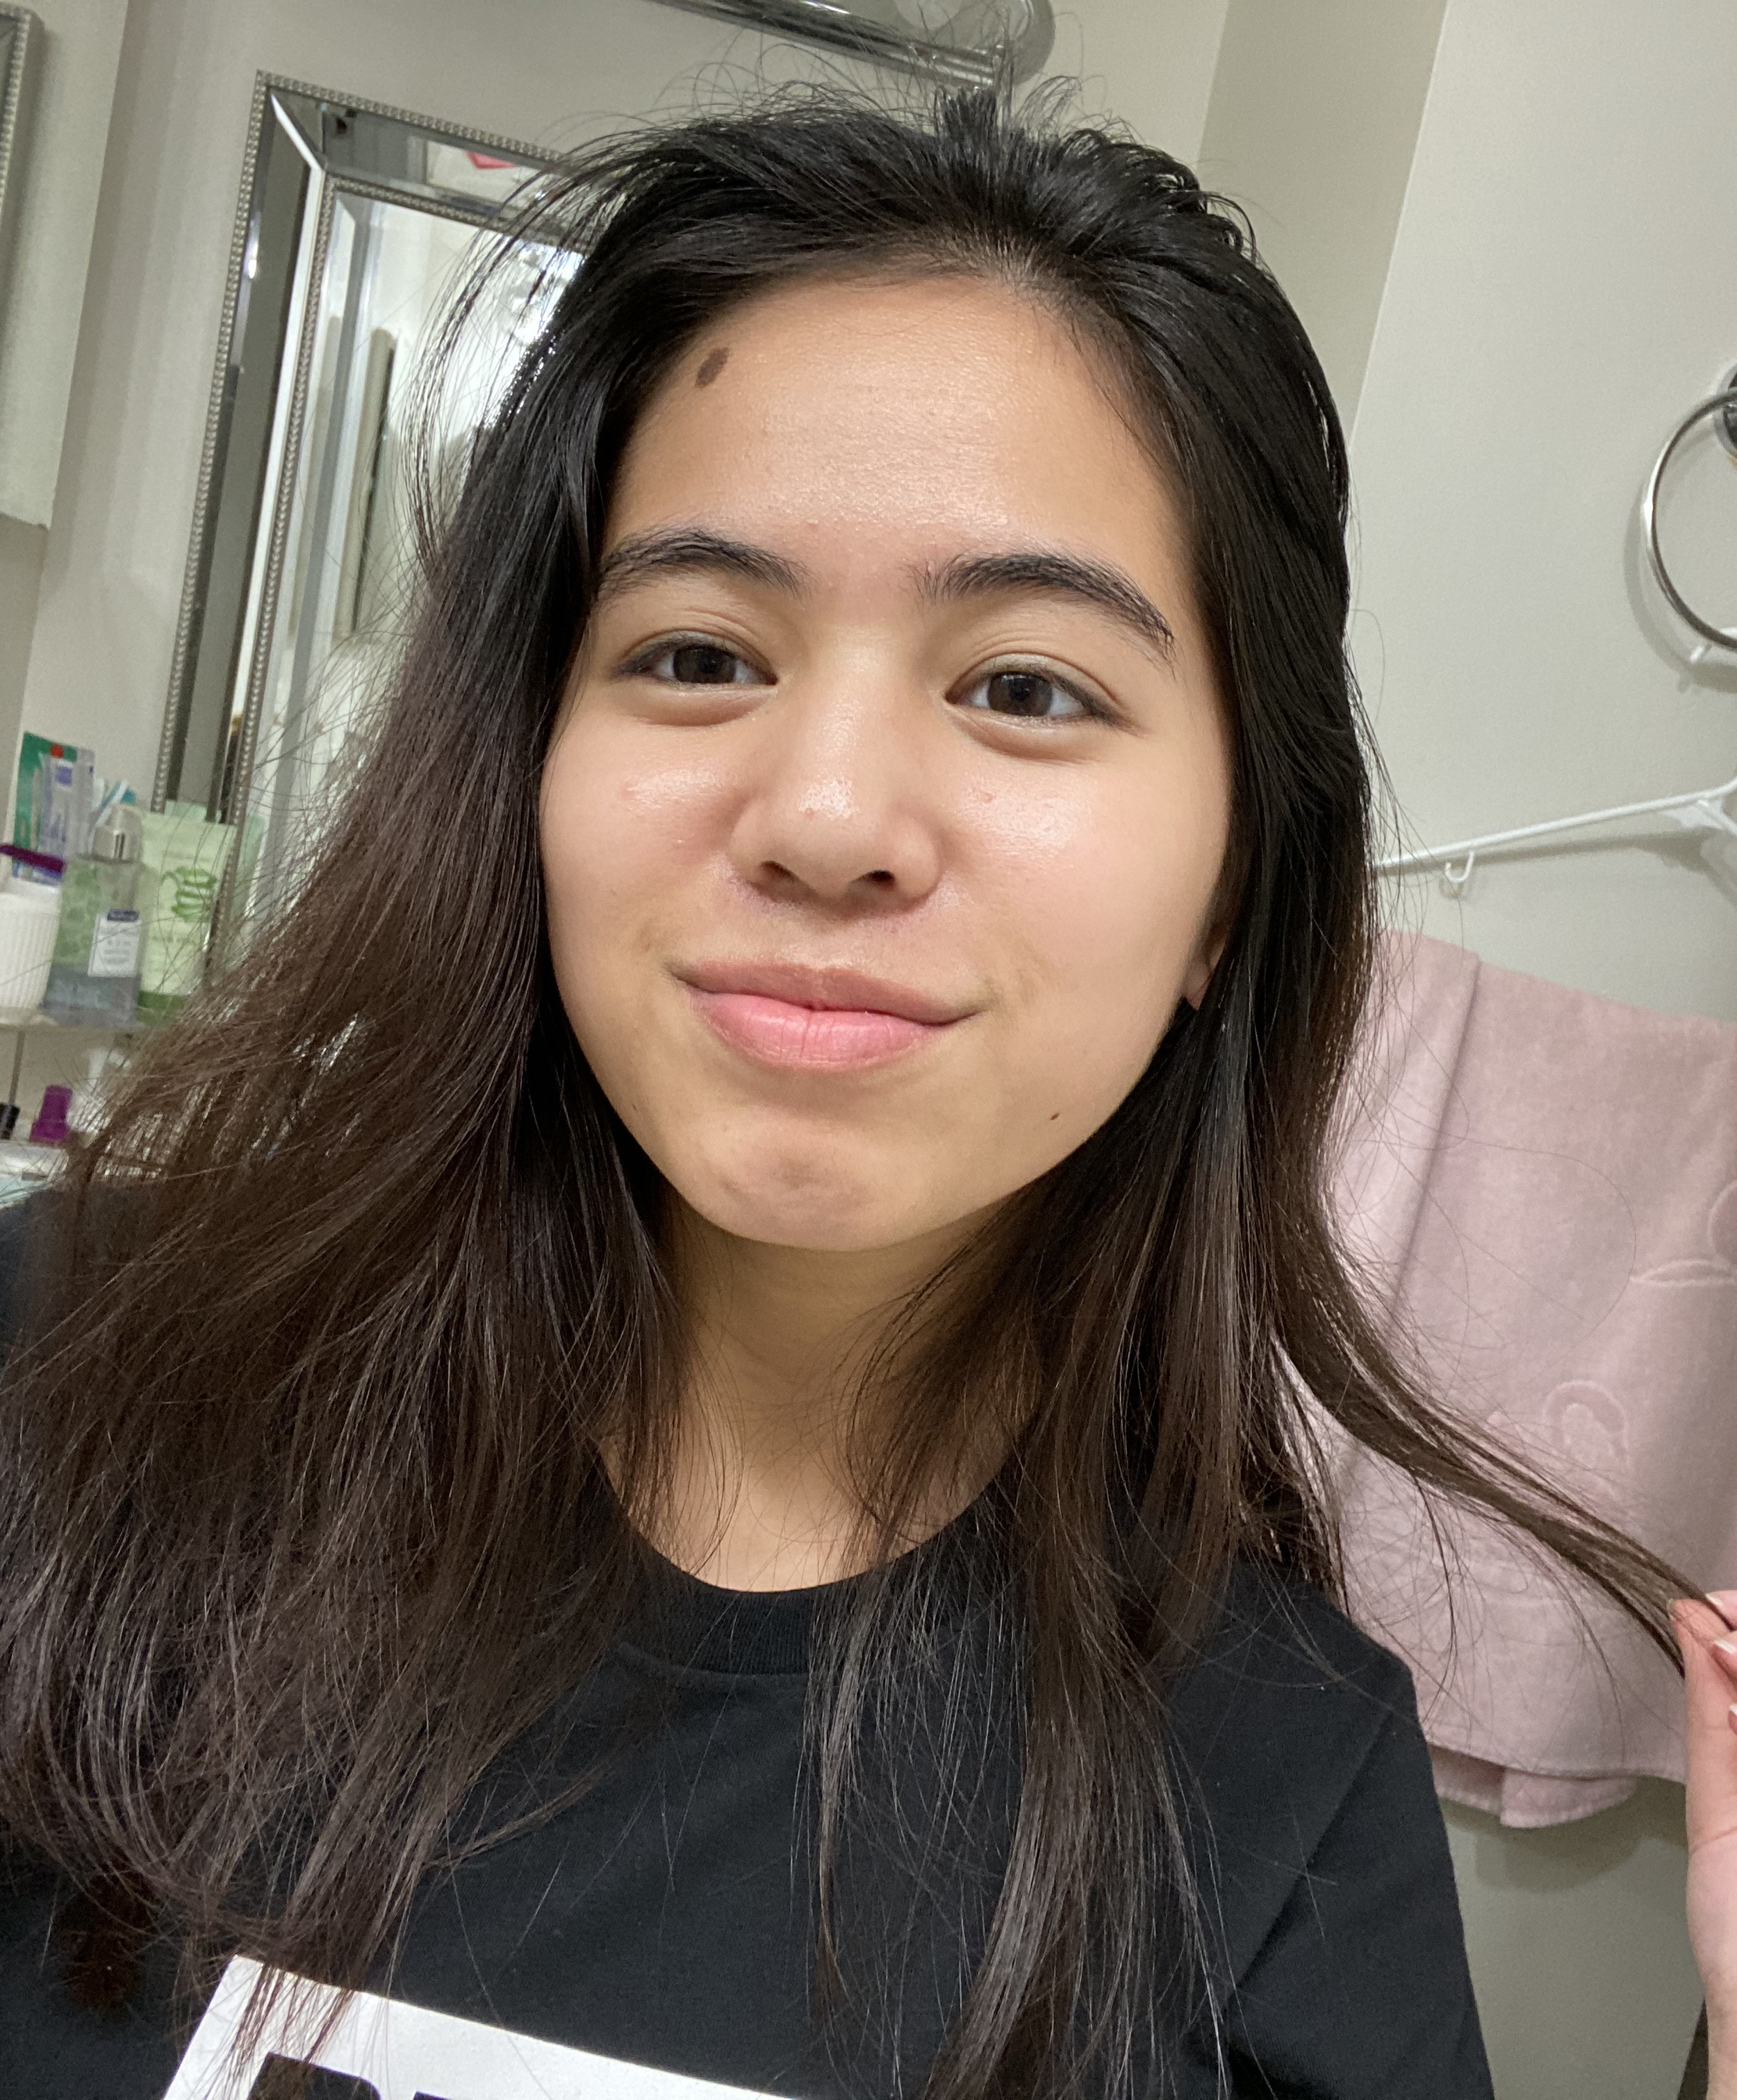 Giselle Concepcion - (Ensemble) is a sophomore who is ecstatic in taking on the WSHS stage once again. Previously starred in Three Guys and a Brenda (Joe), Xtra Drama Island (Felicity), and Very Serious (Mom), she hopes that Einstein's Brains will be an unforgettable addition to her theatre journey. Giselle would like to thank her entire family for their immense love and support, her friends for existing, and the greatest cast and crew that she has had the most pleasure working with.